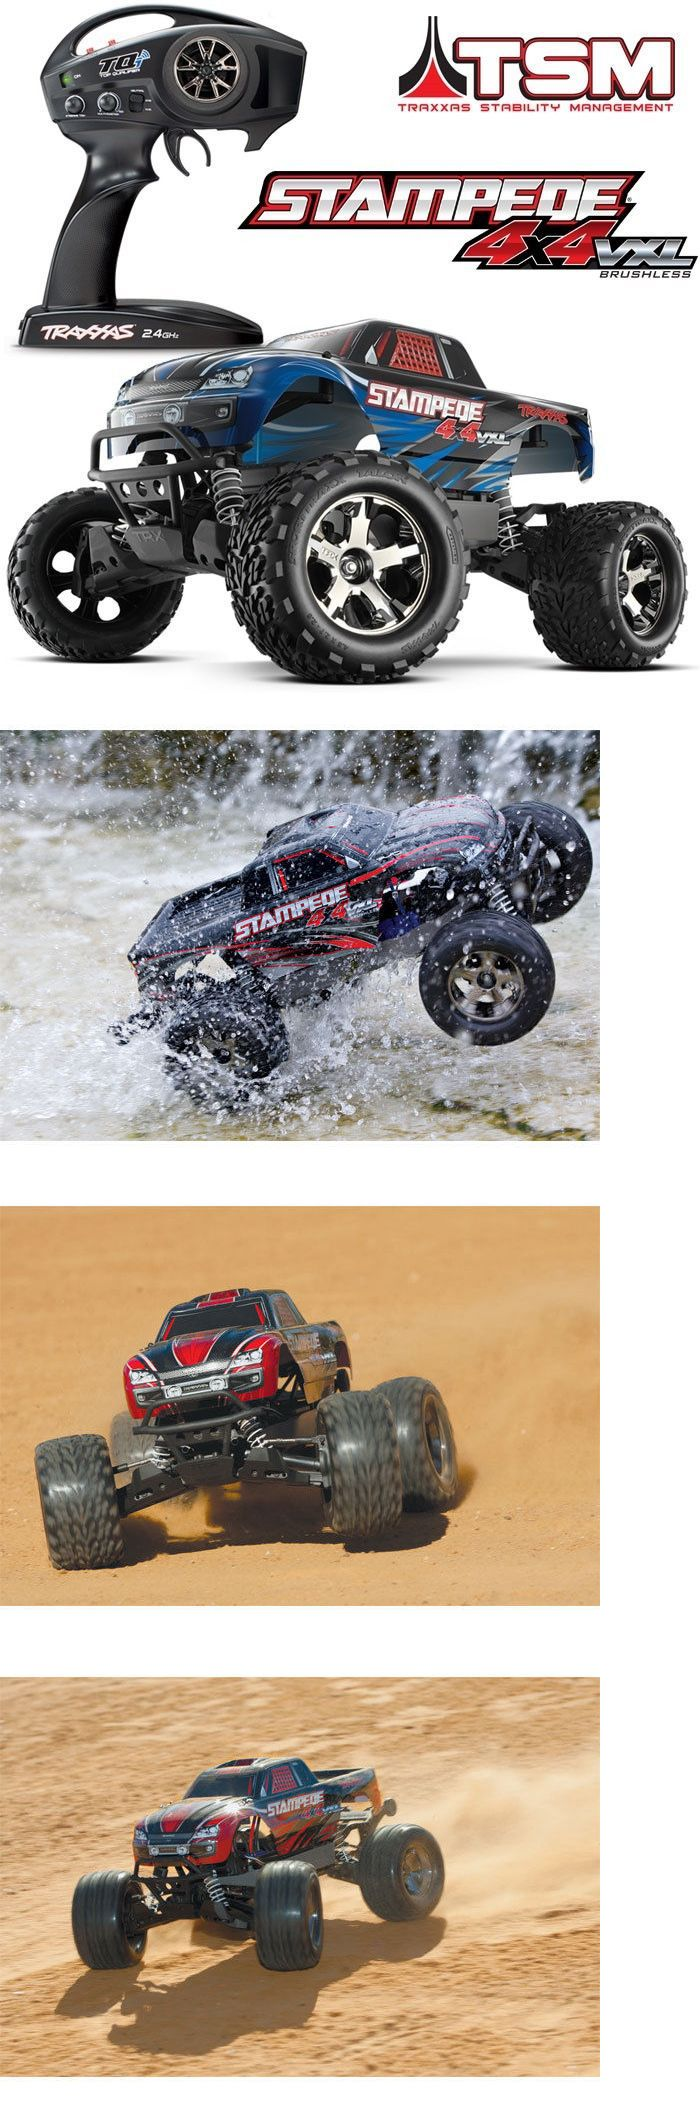 Cars trucks and motorcycles 182183 traxxas 67086 4 stampede 4x4 vxl brushless rtr truck